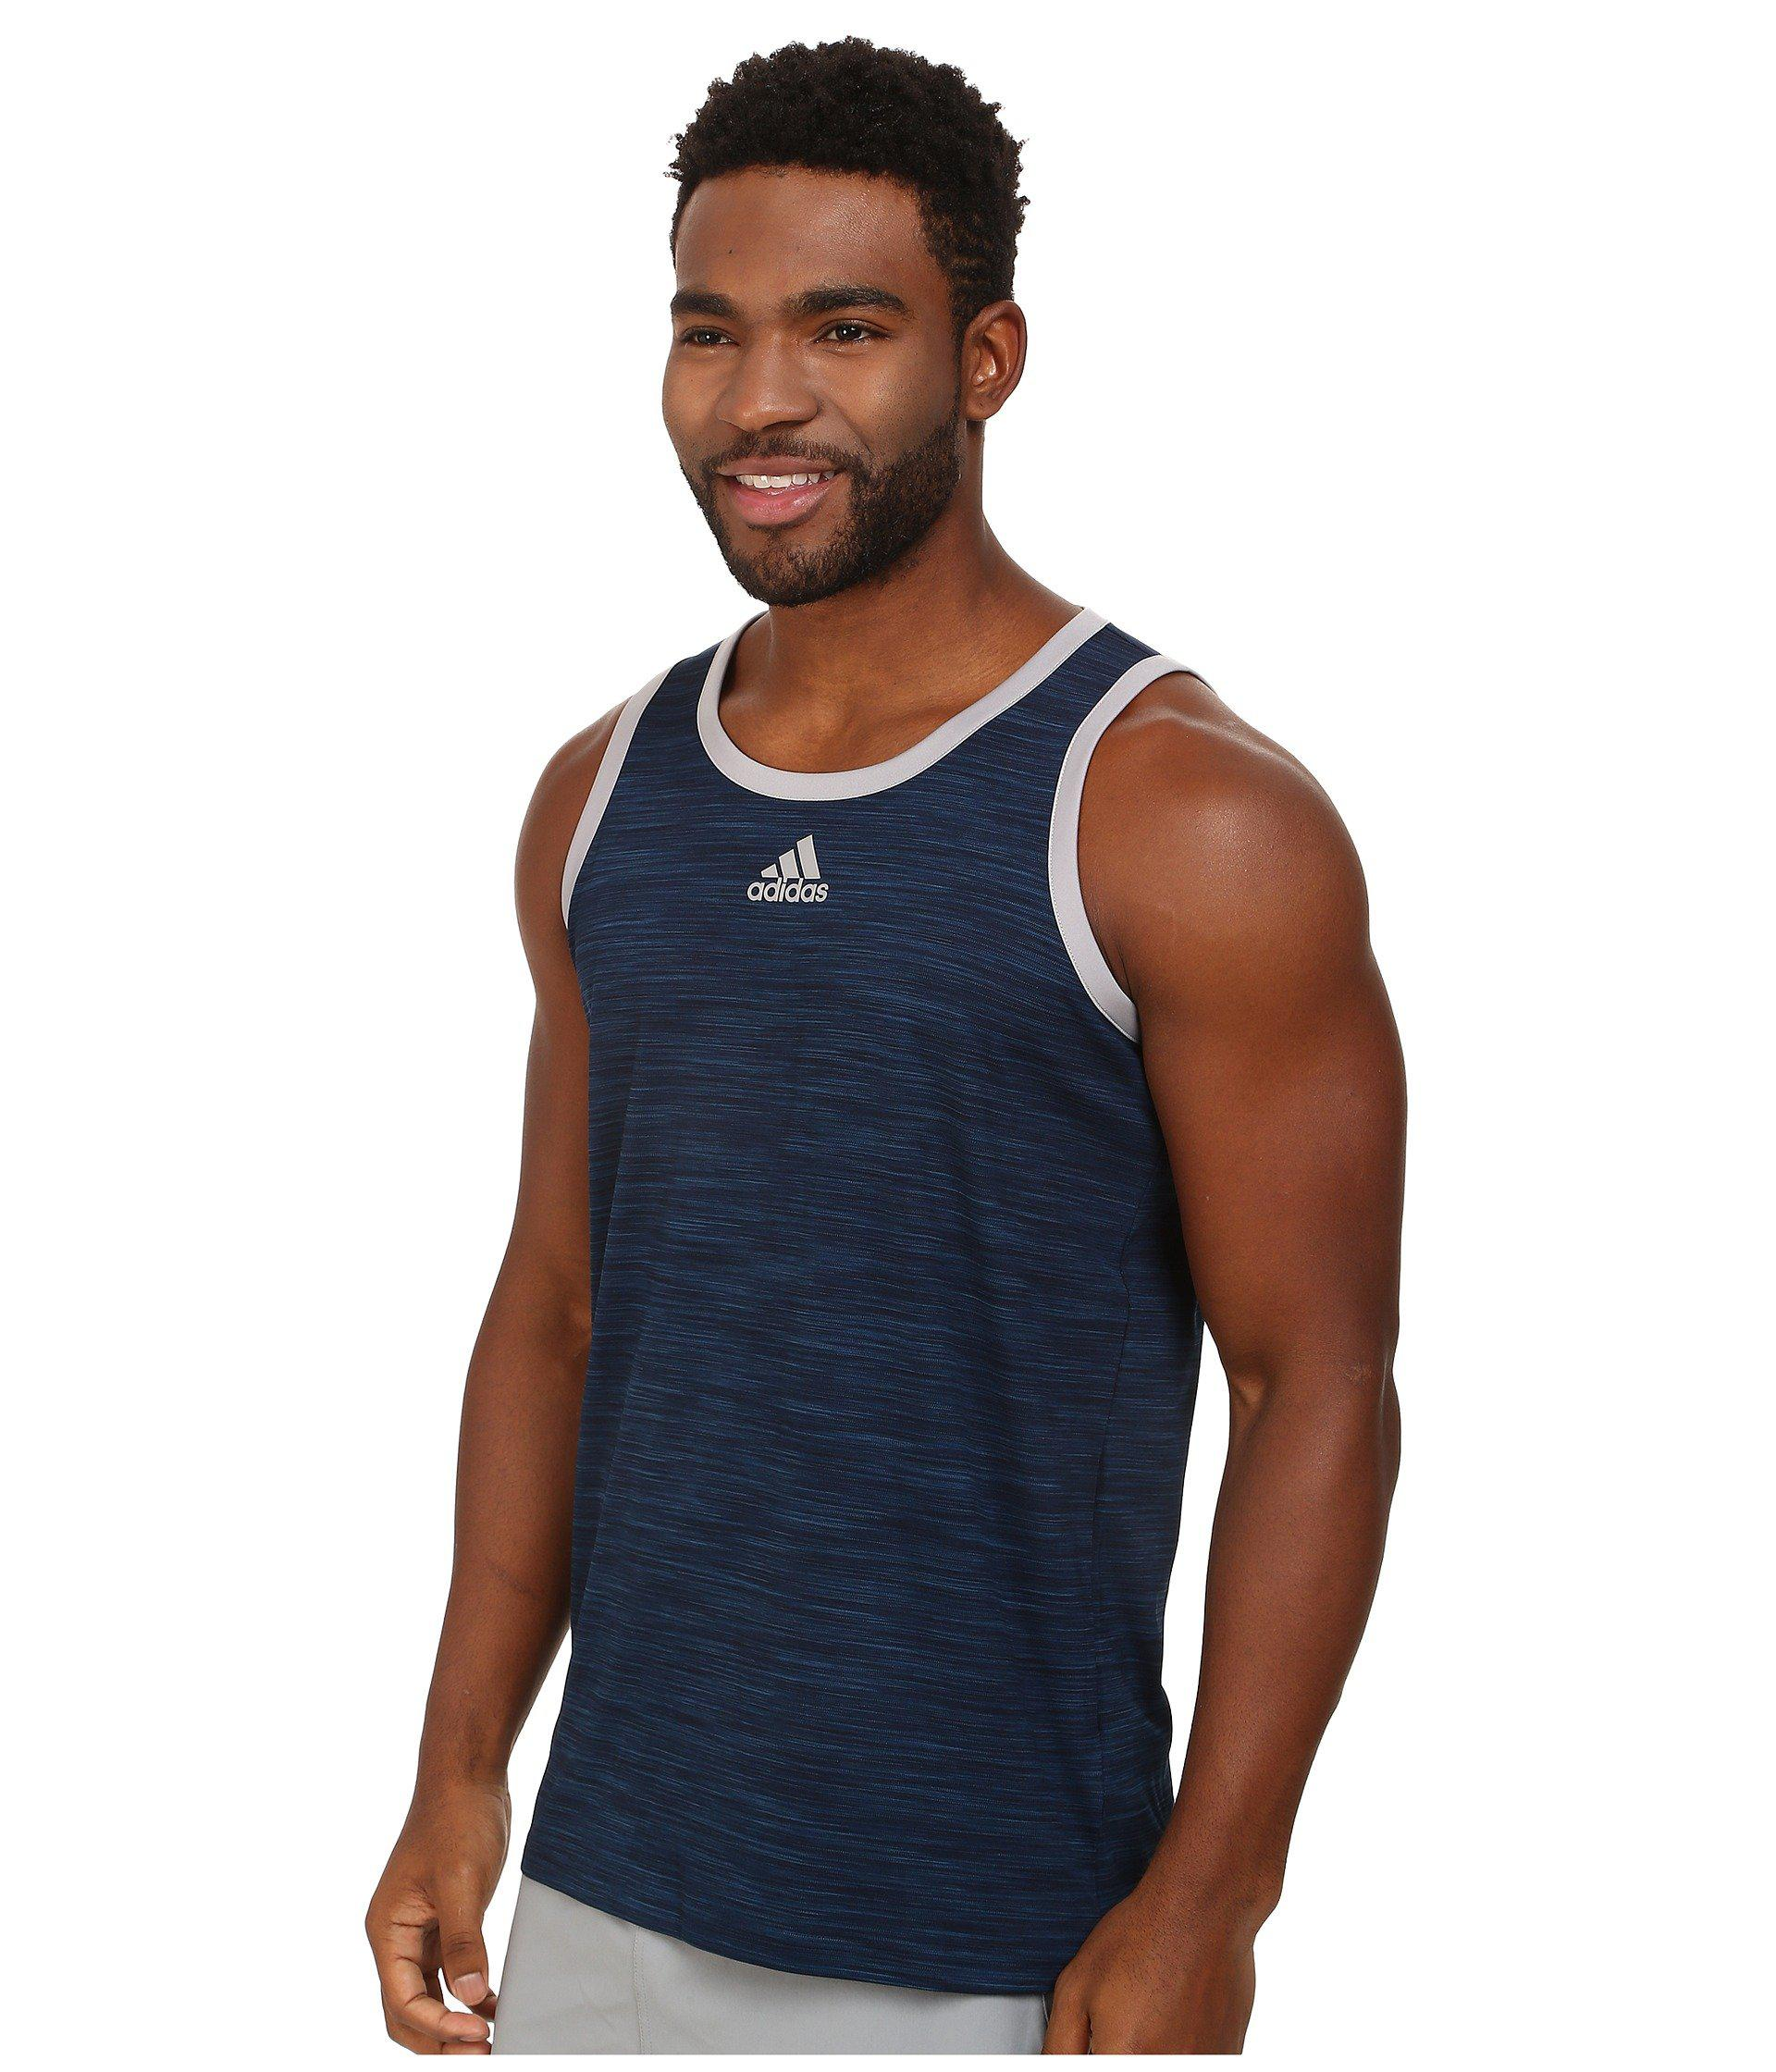 c3e8a3d2a28ecb Lyst - adidas Heathered Tank (scarlet black) Men s Sleeveless in Blue for  Men